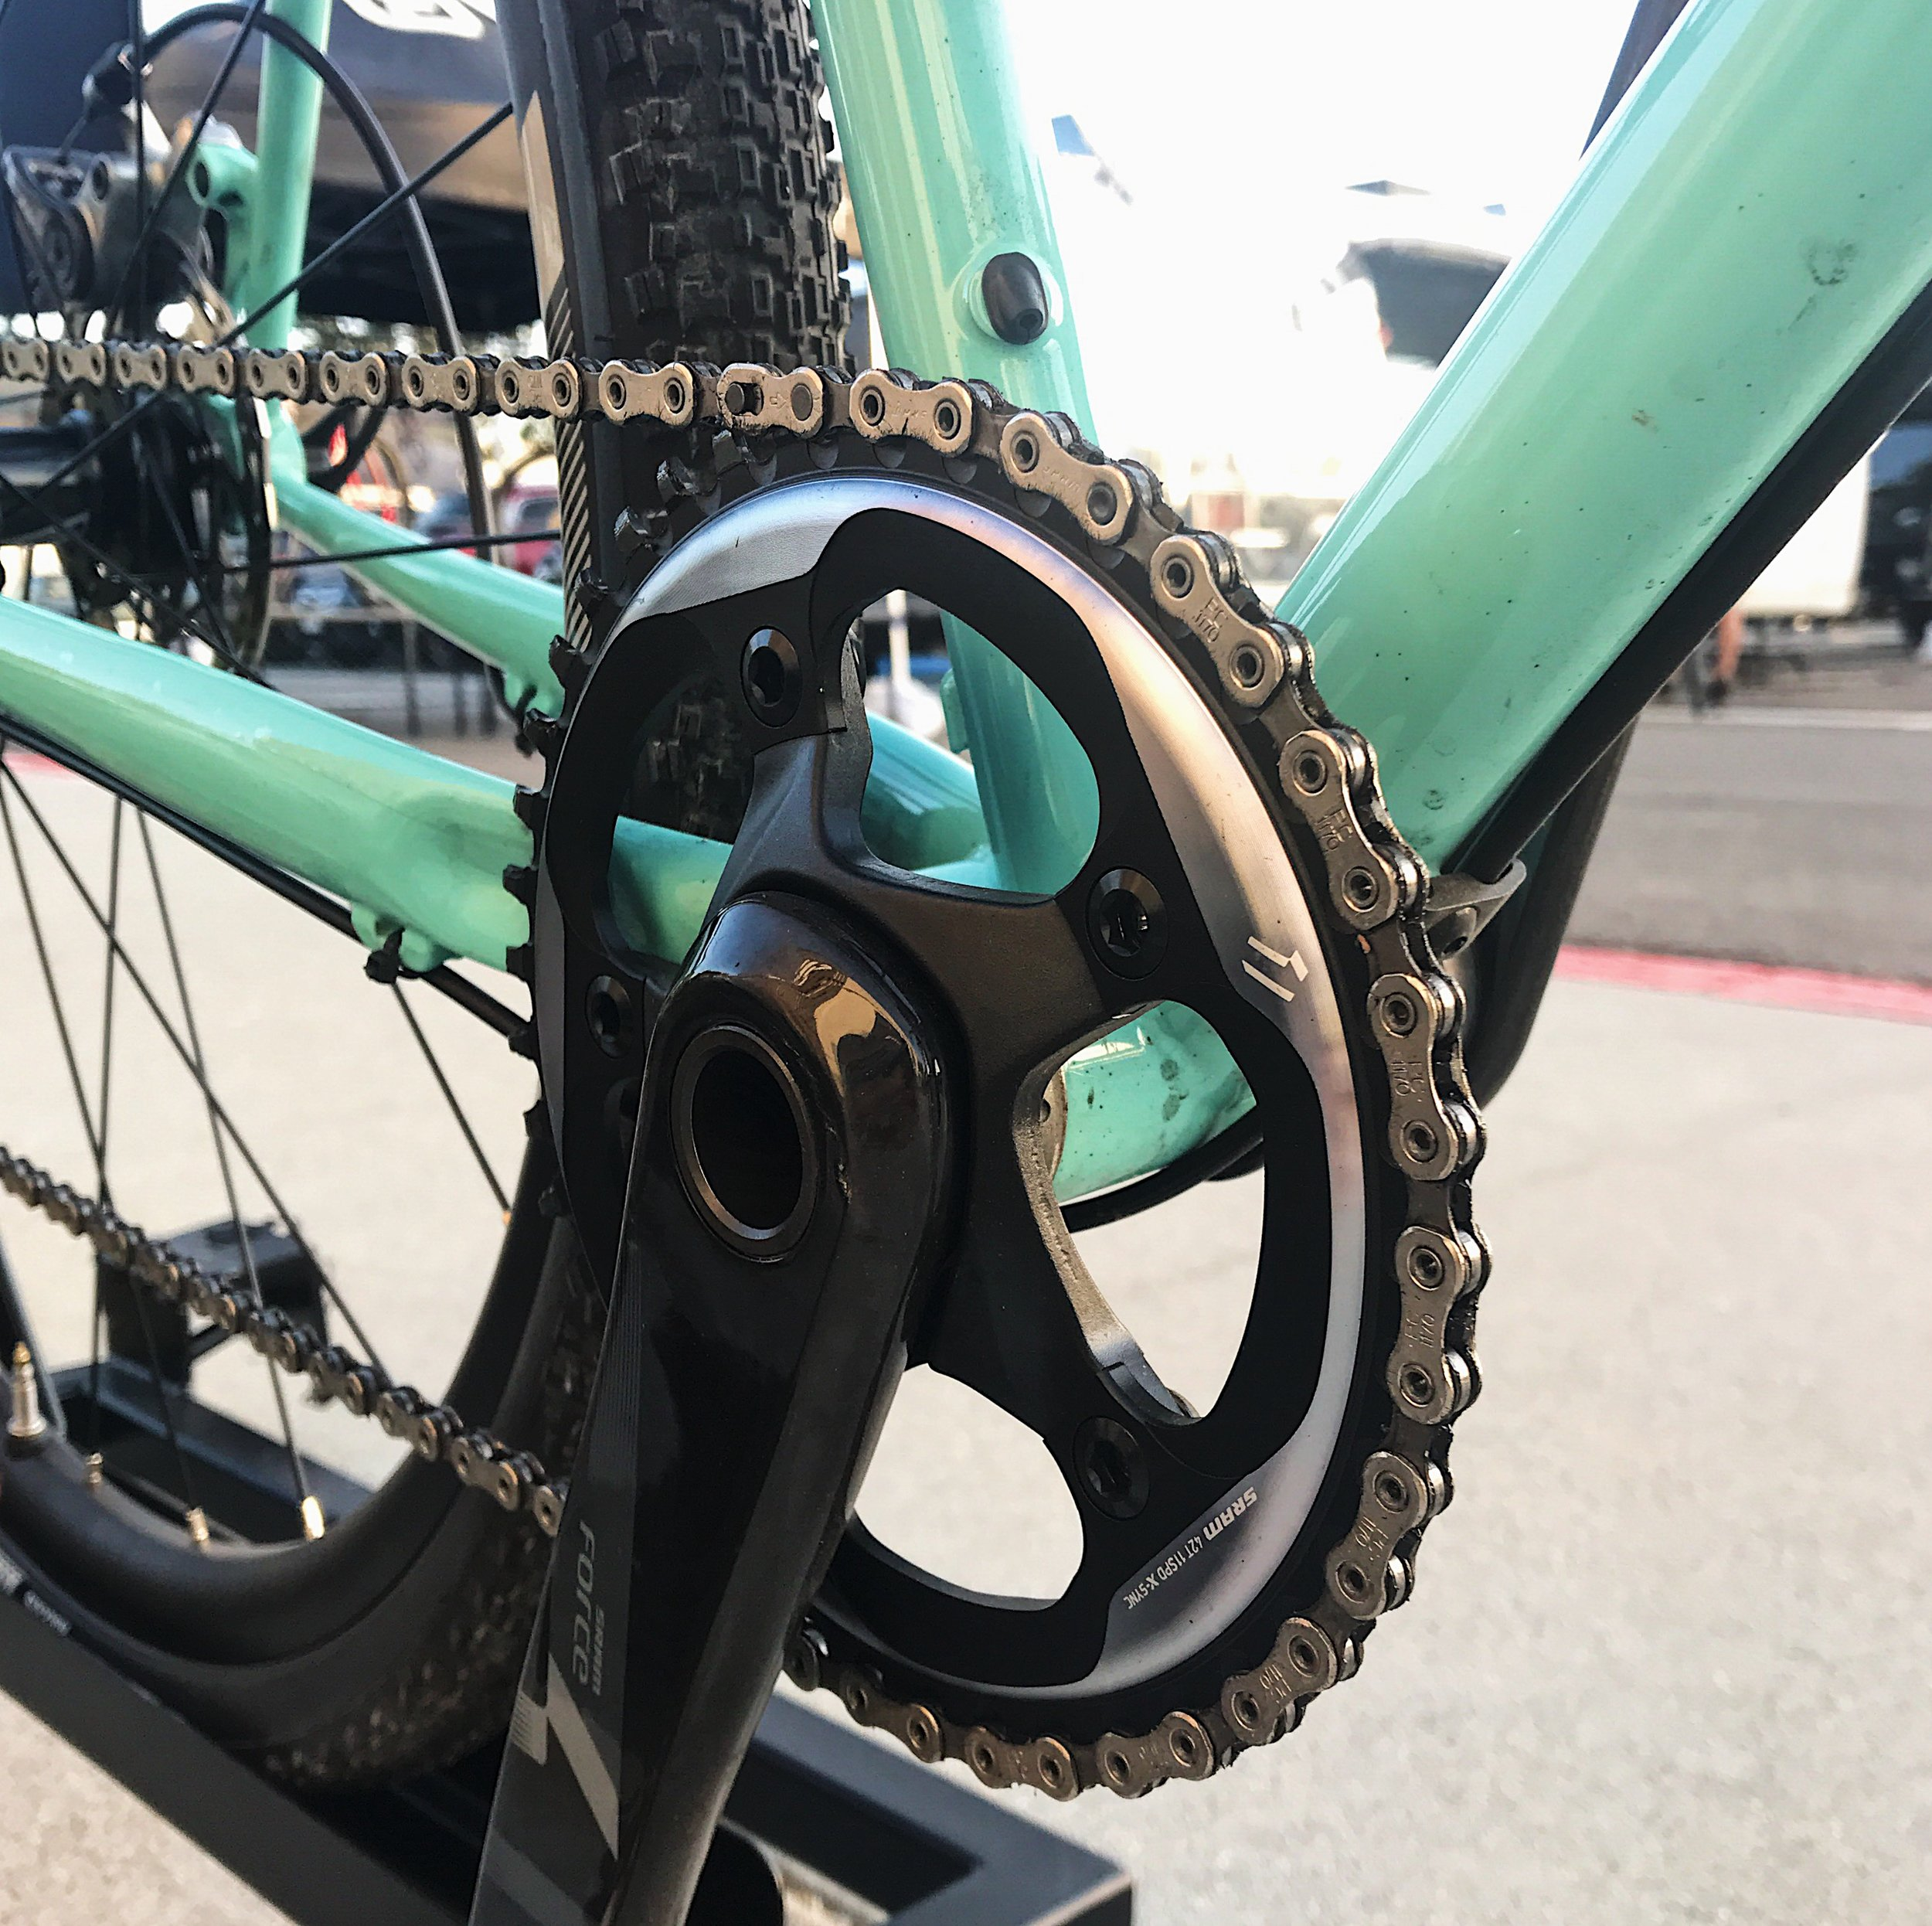 equipped with SRAM Force 1